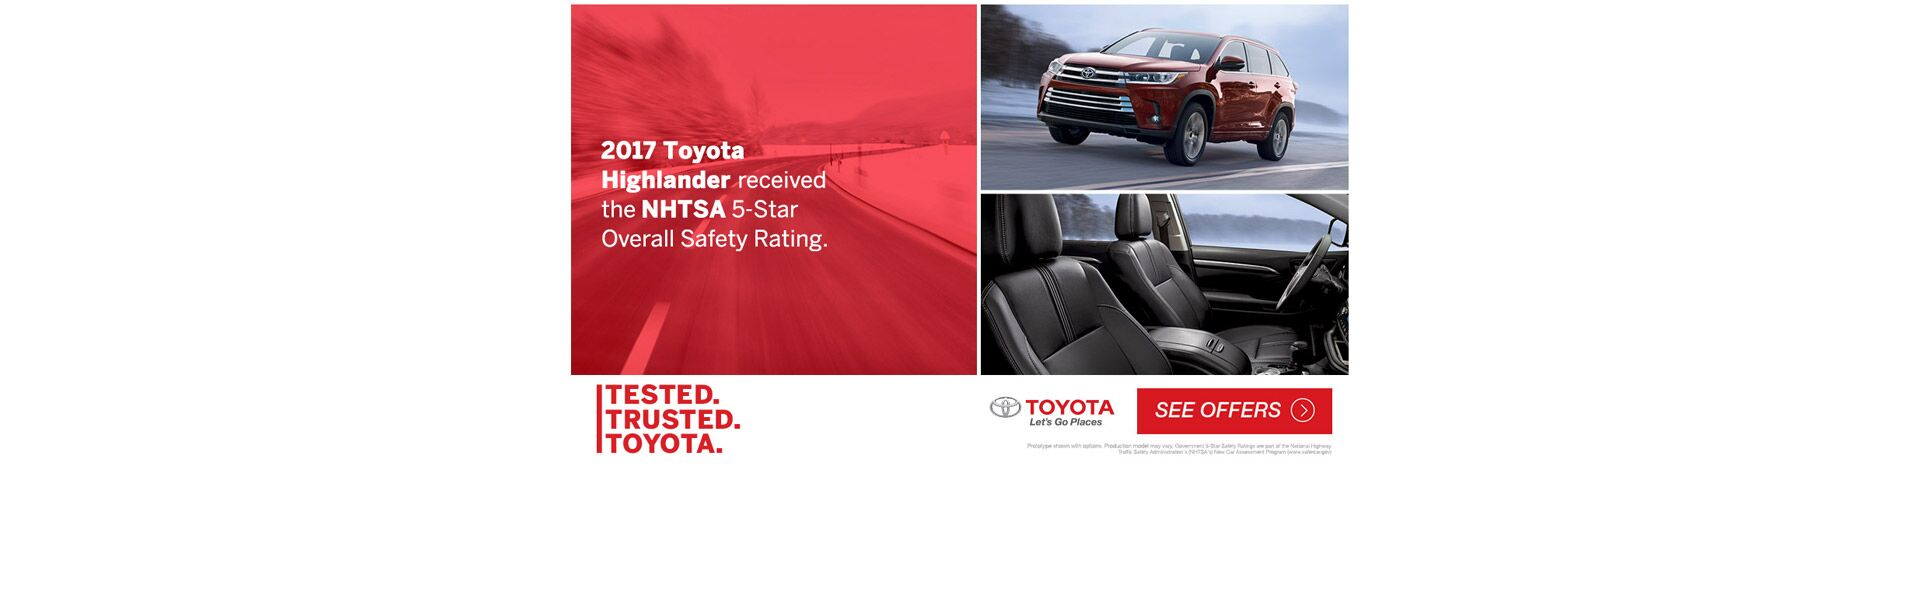 Trusted Toyota Highlander